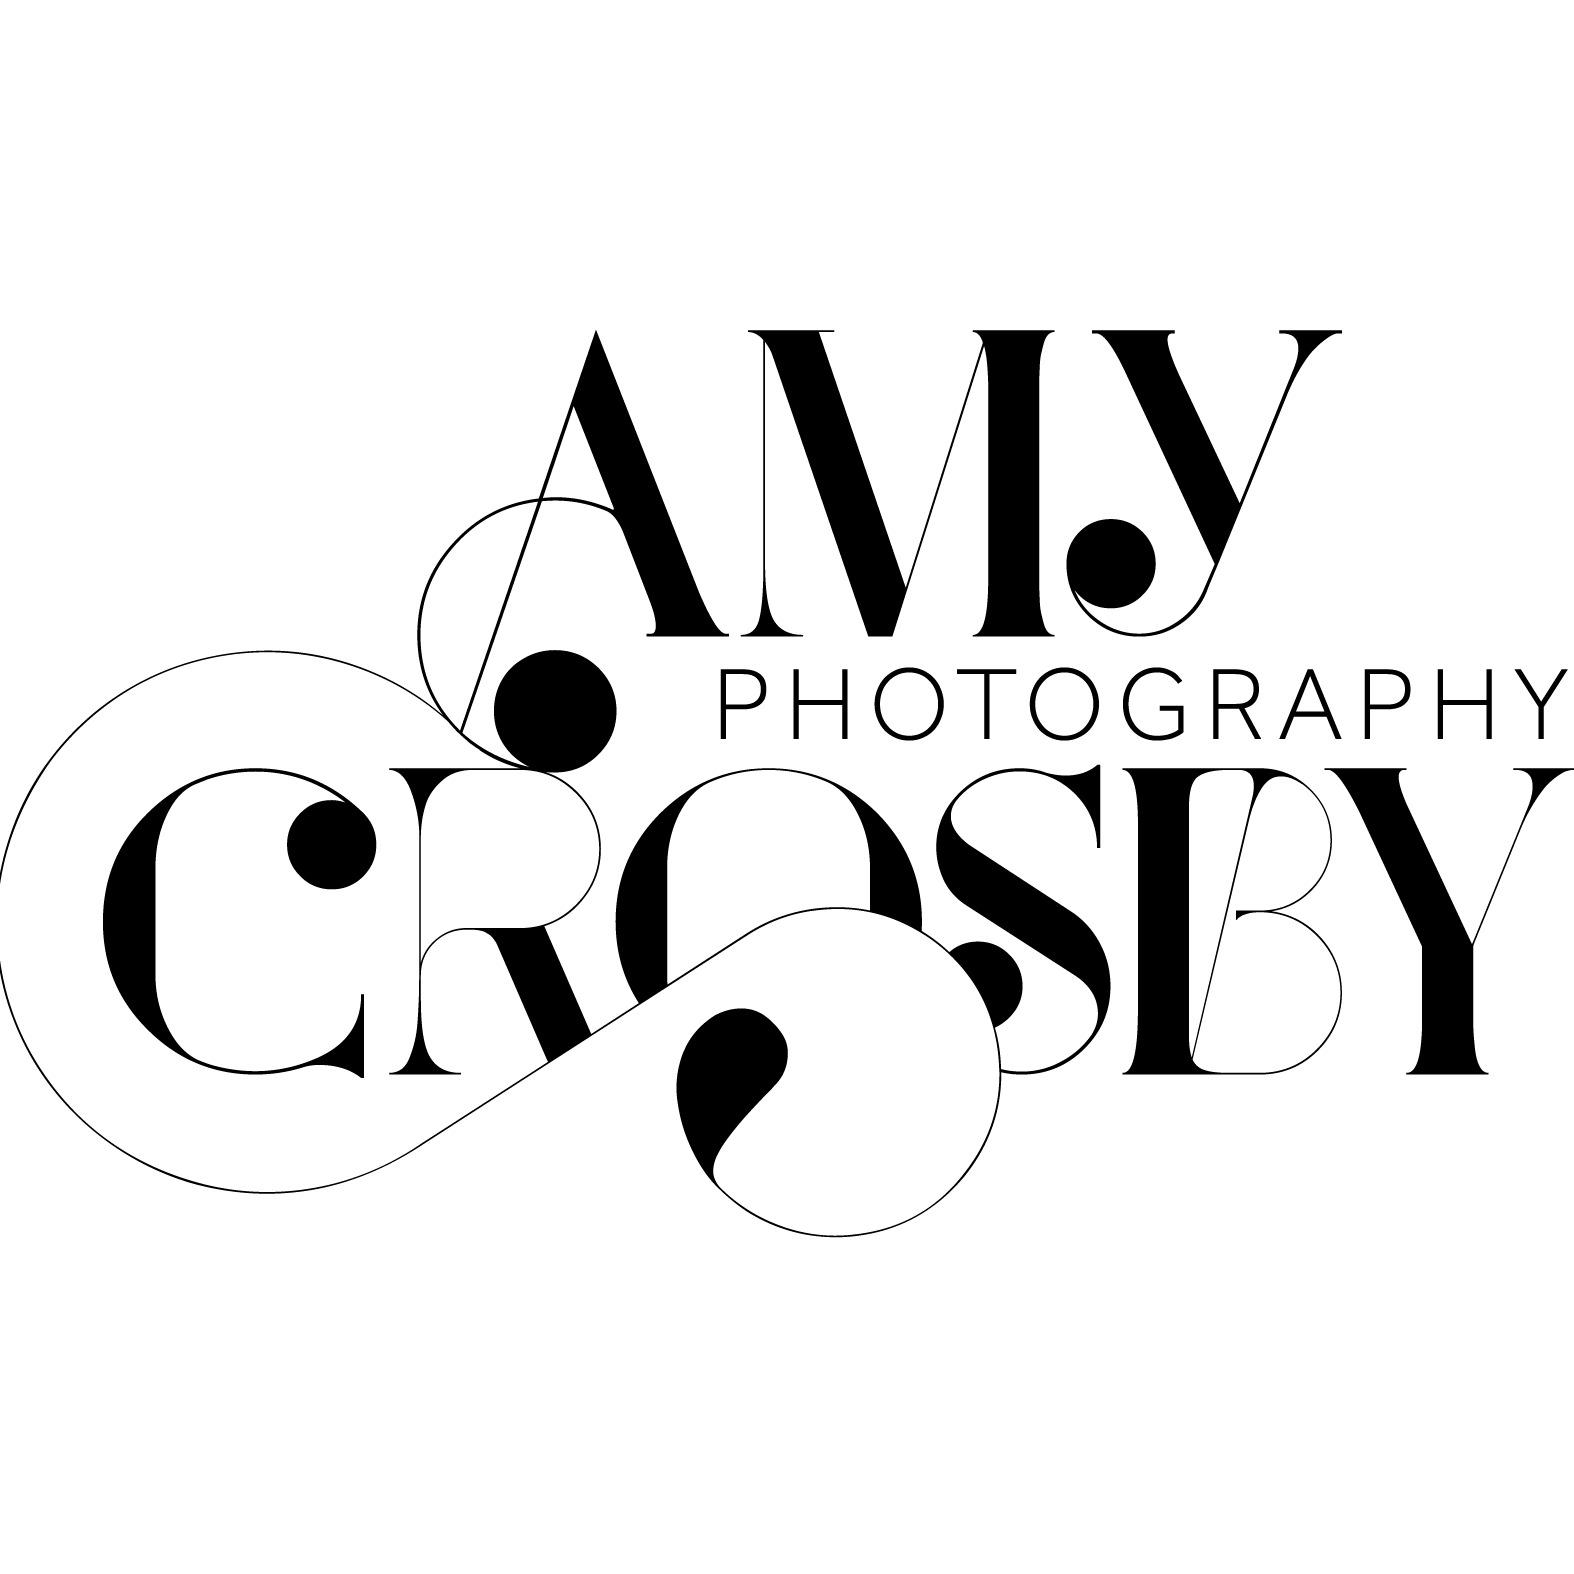 Amy Crosby Photography